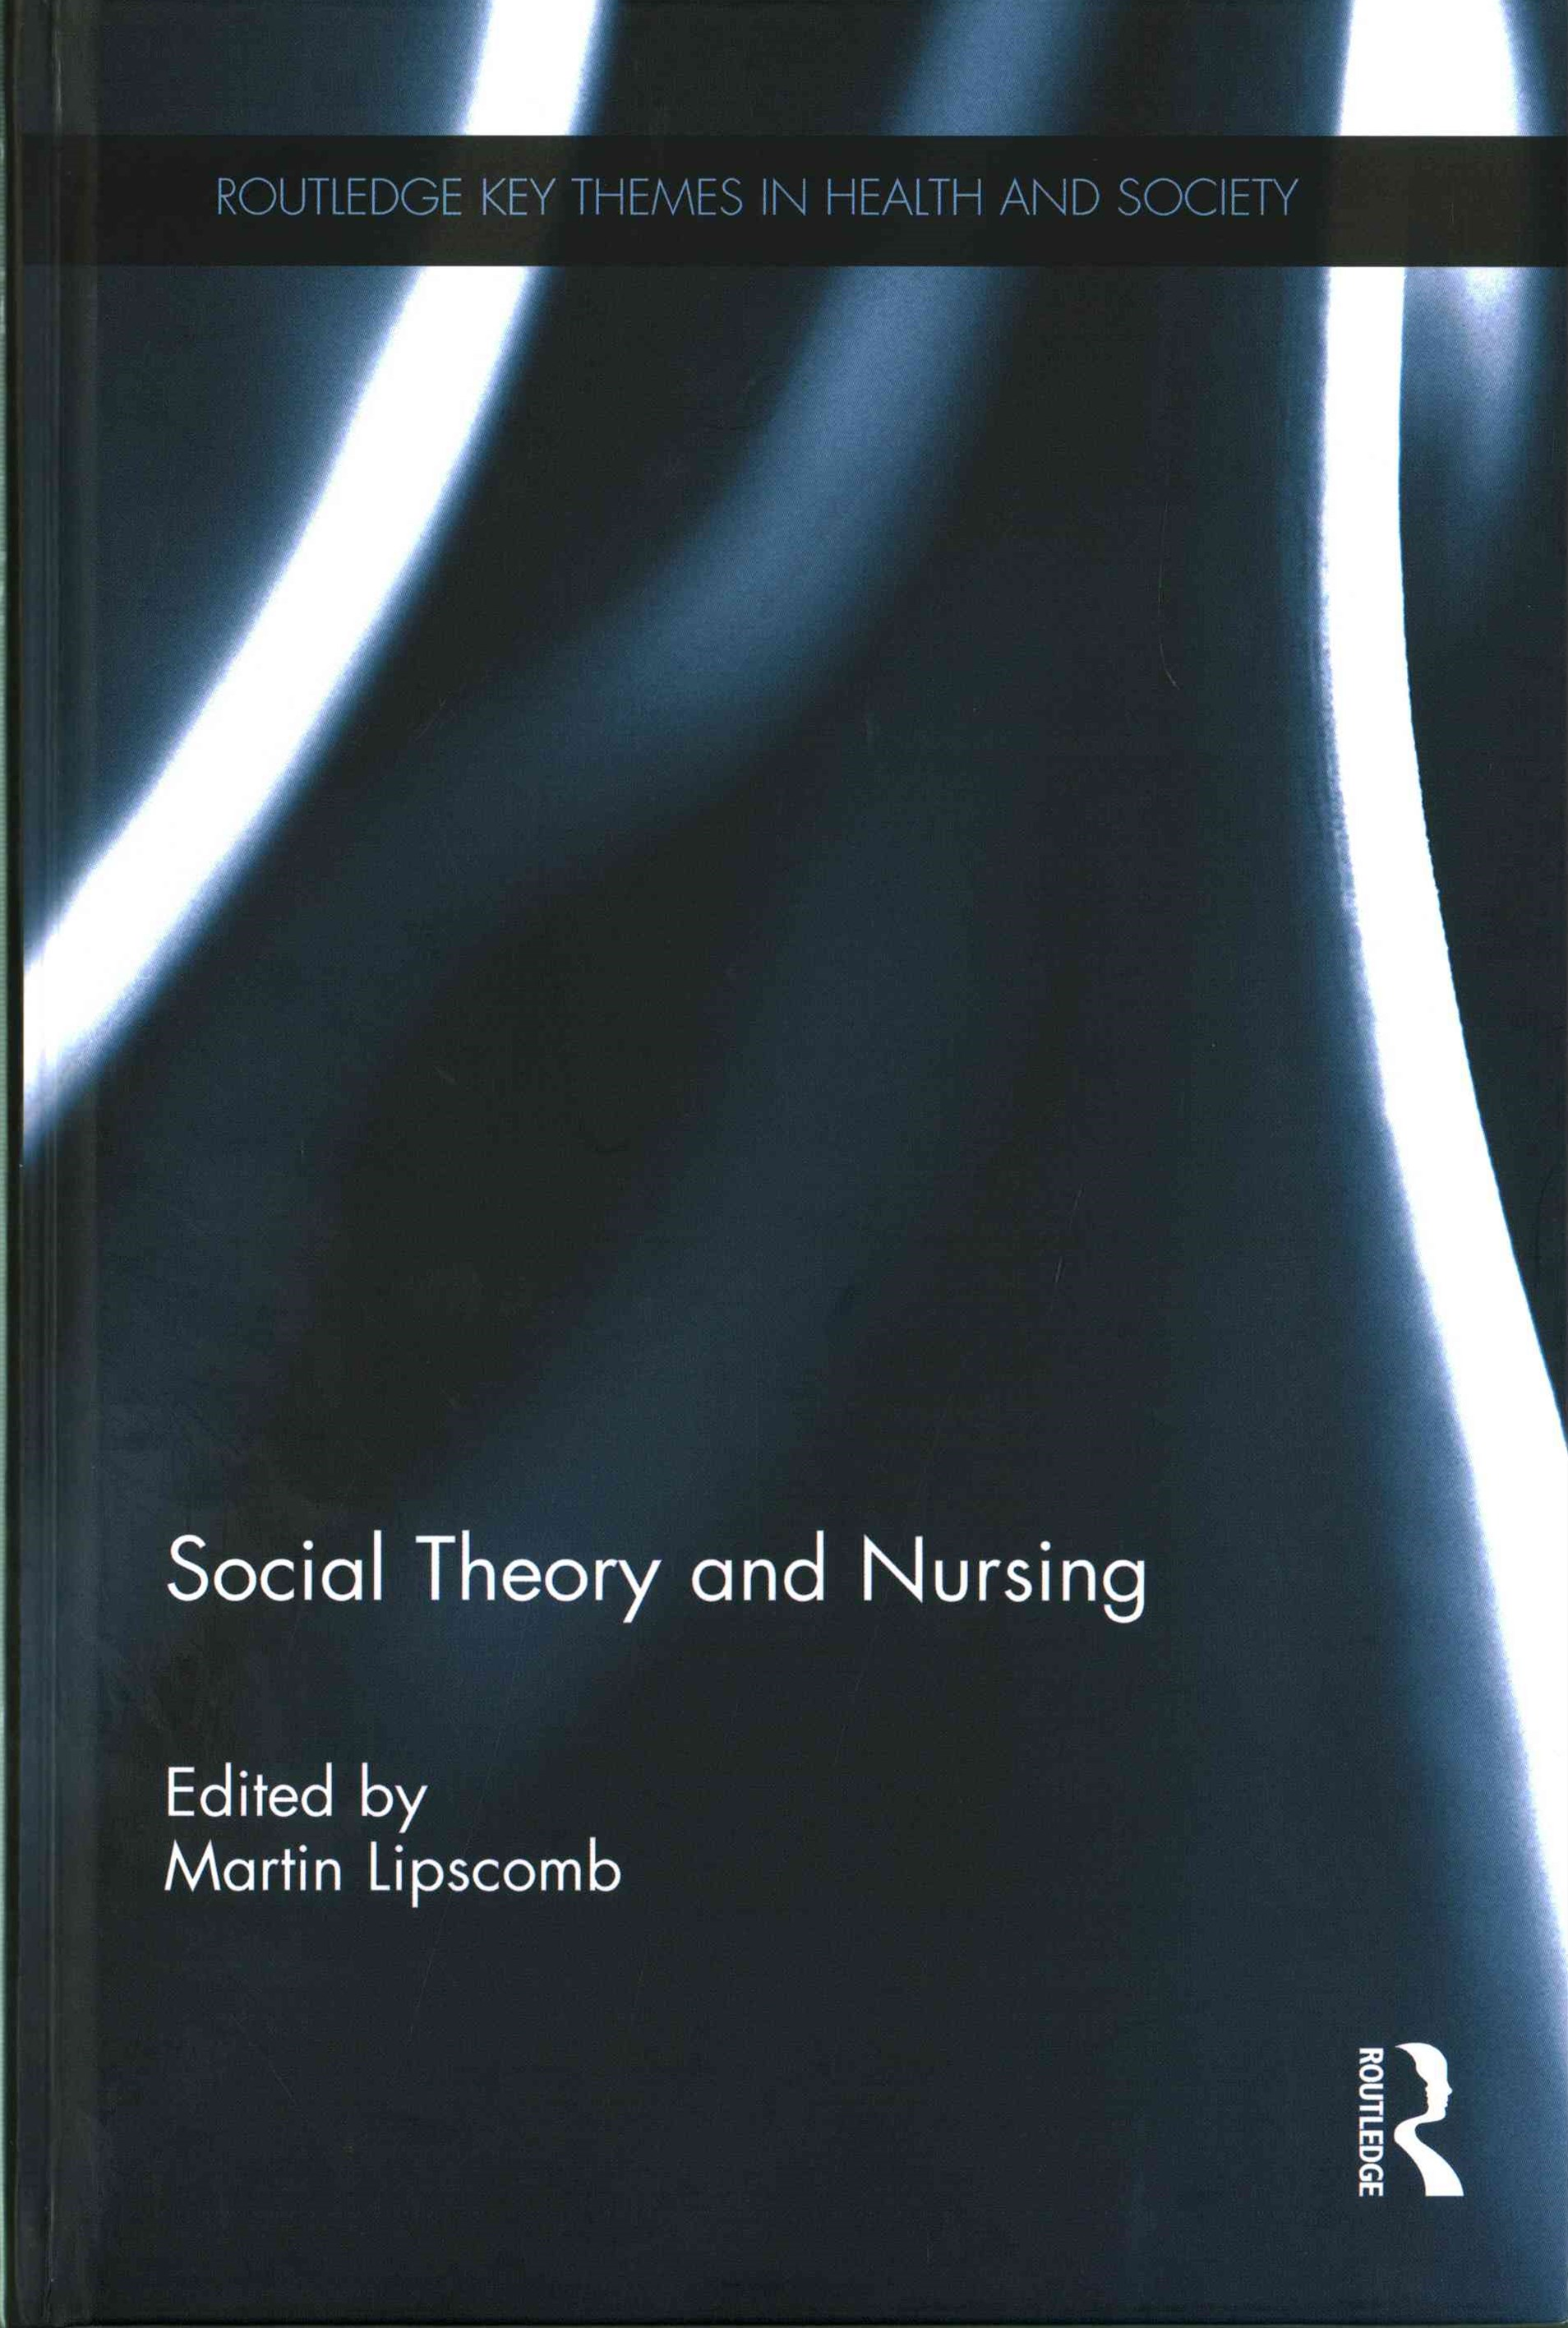 Social Theory and Nursing